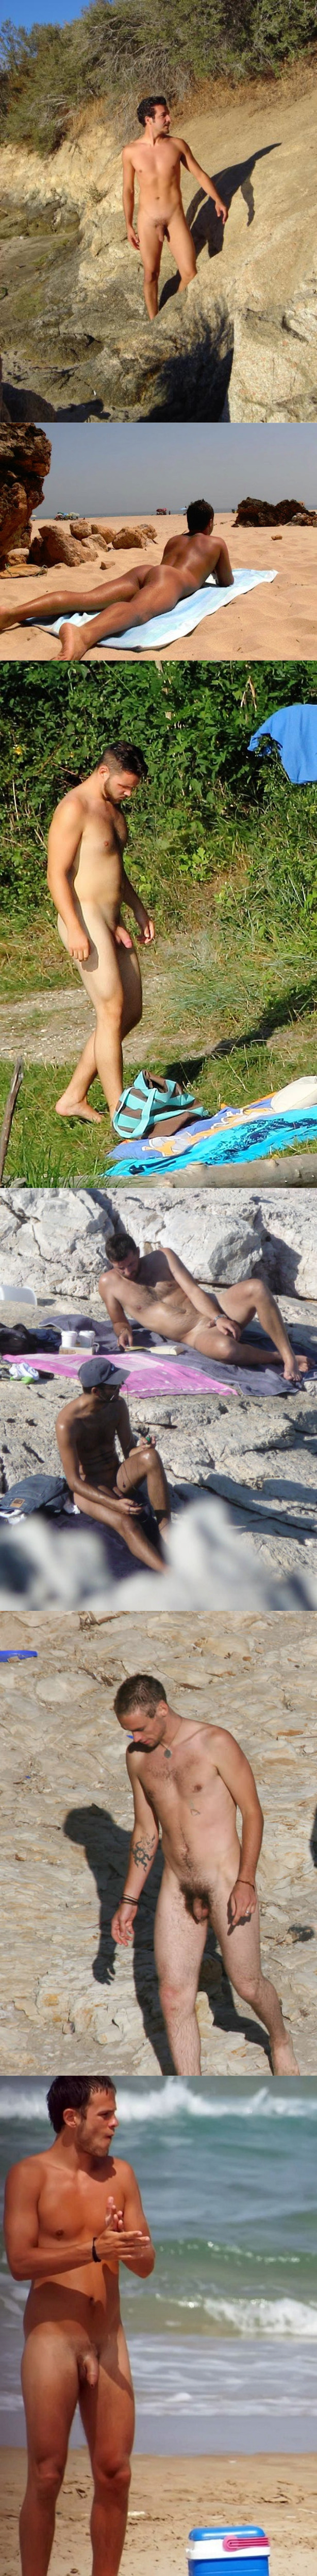 spy-on-guys-naked-beach